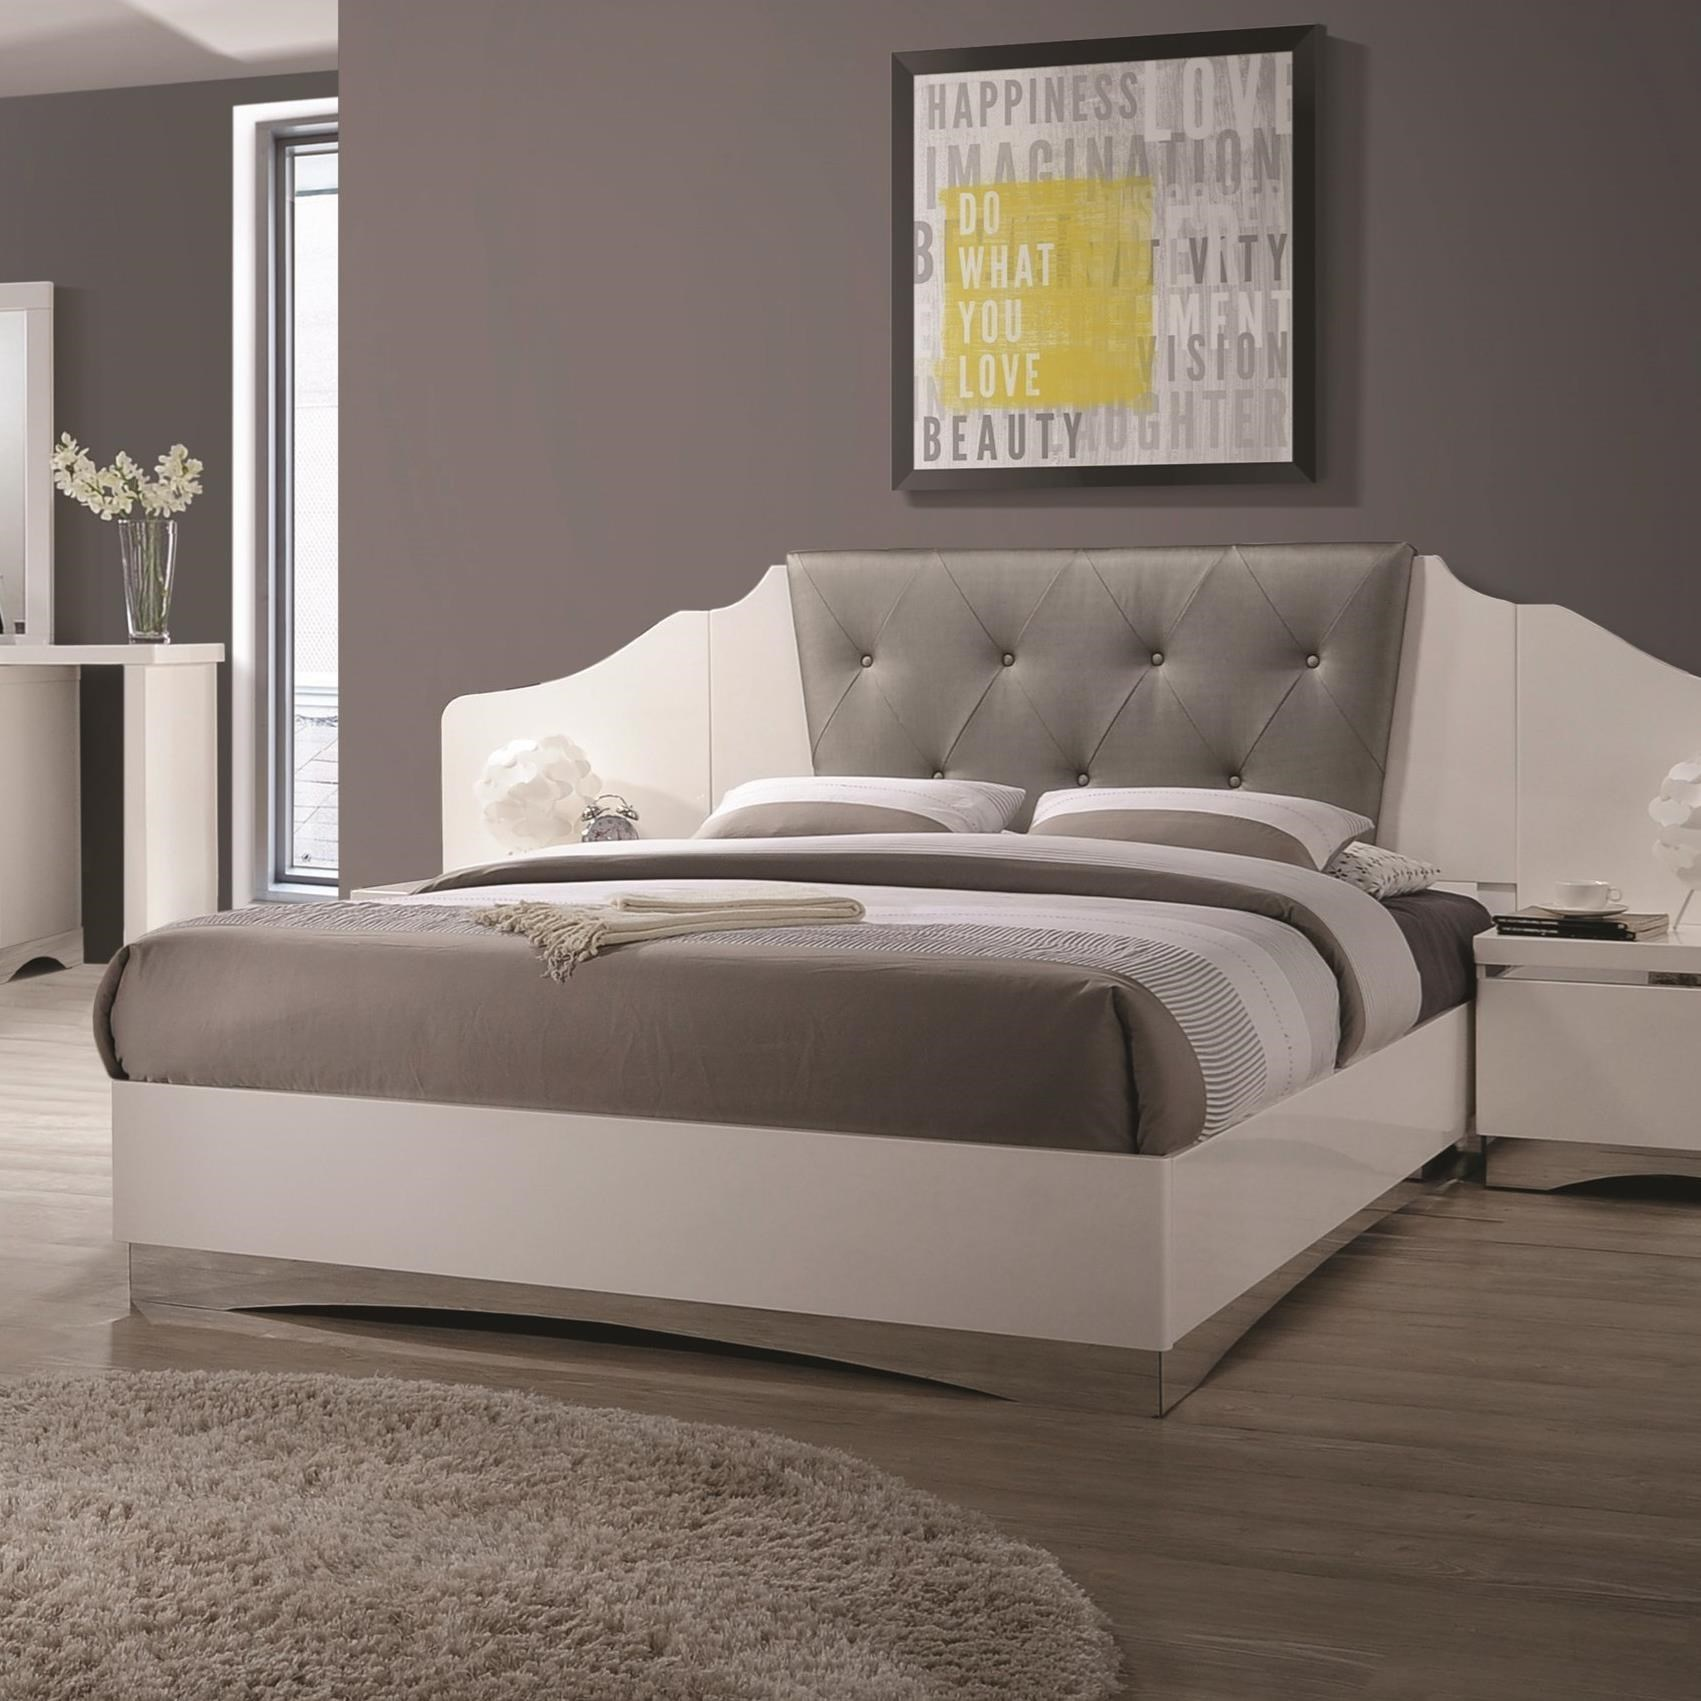 Coaster Alessandro King Low Profile Bed - Item Number: 205001KE